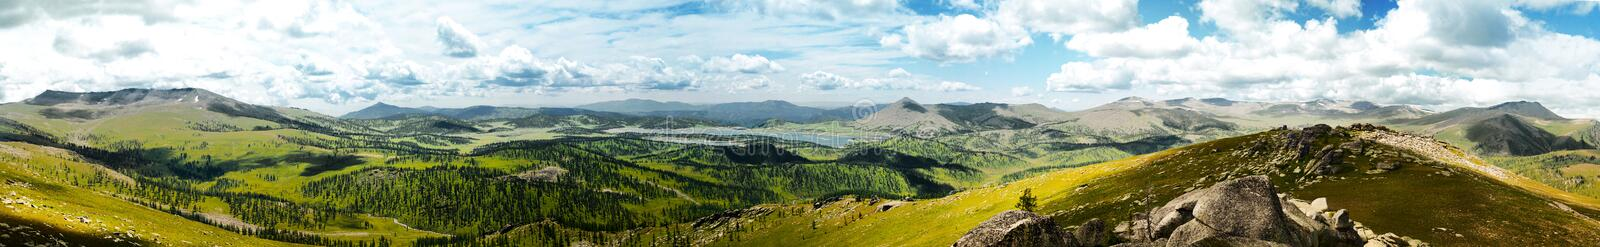 Panorama of a mountain valley stock image